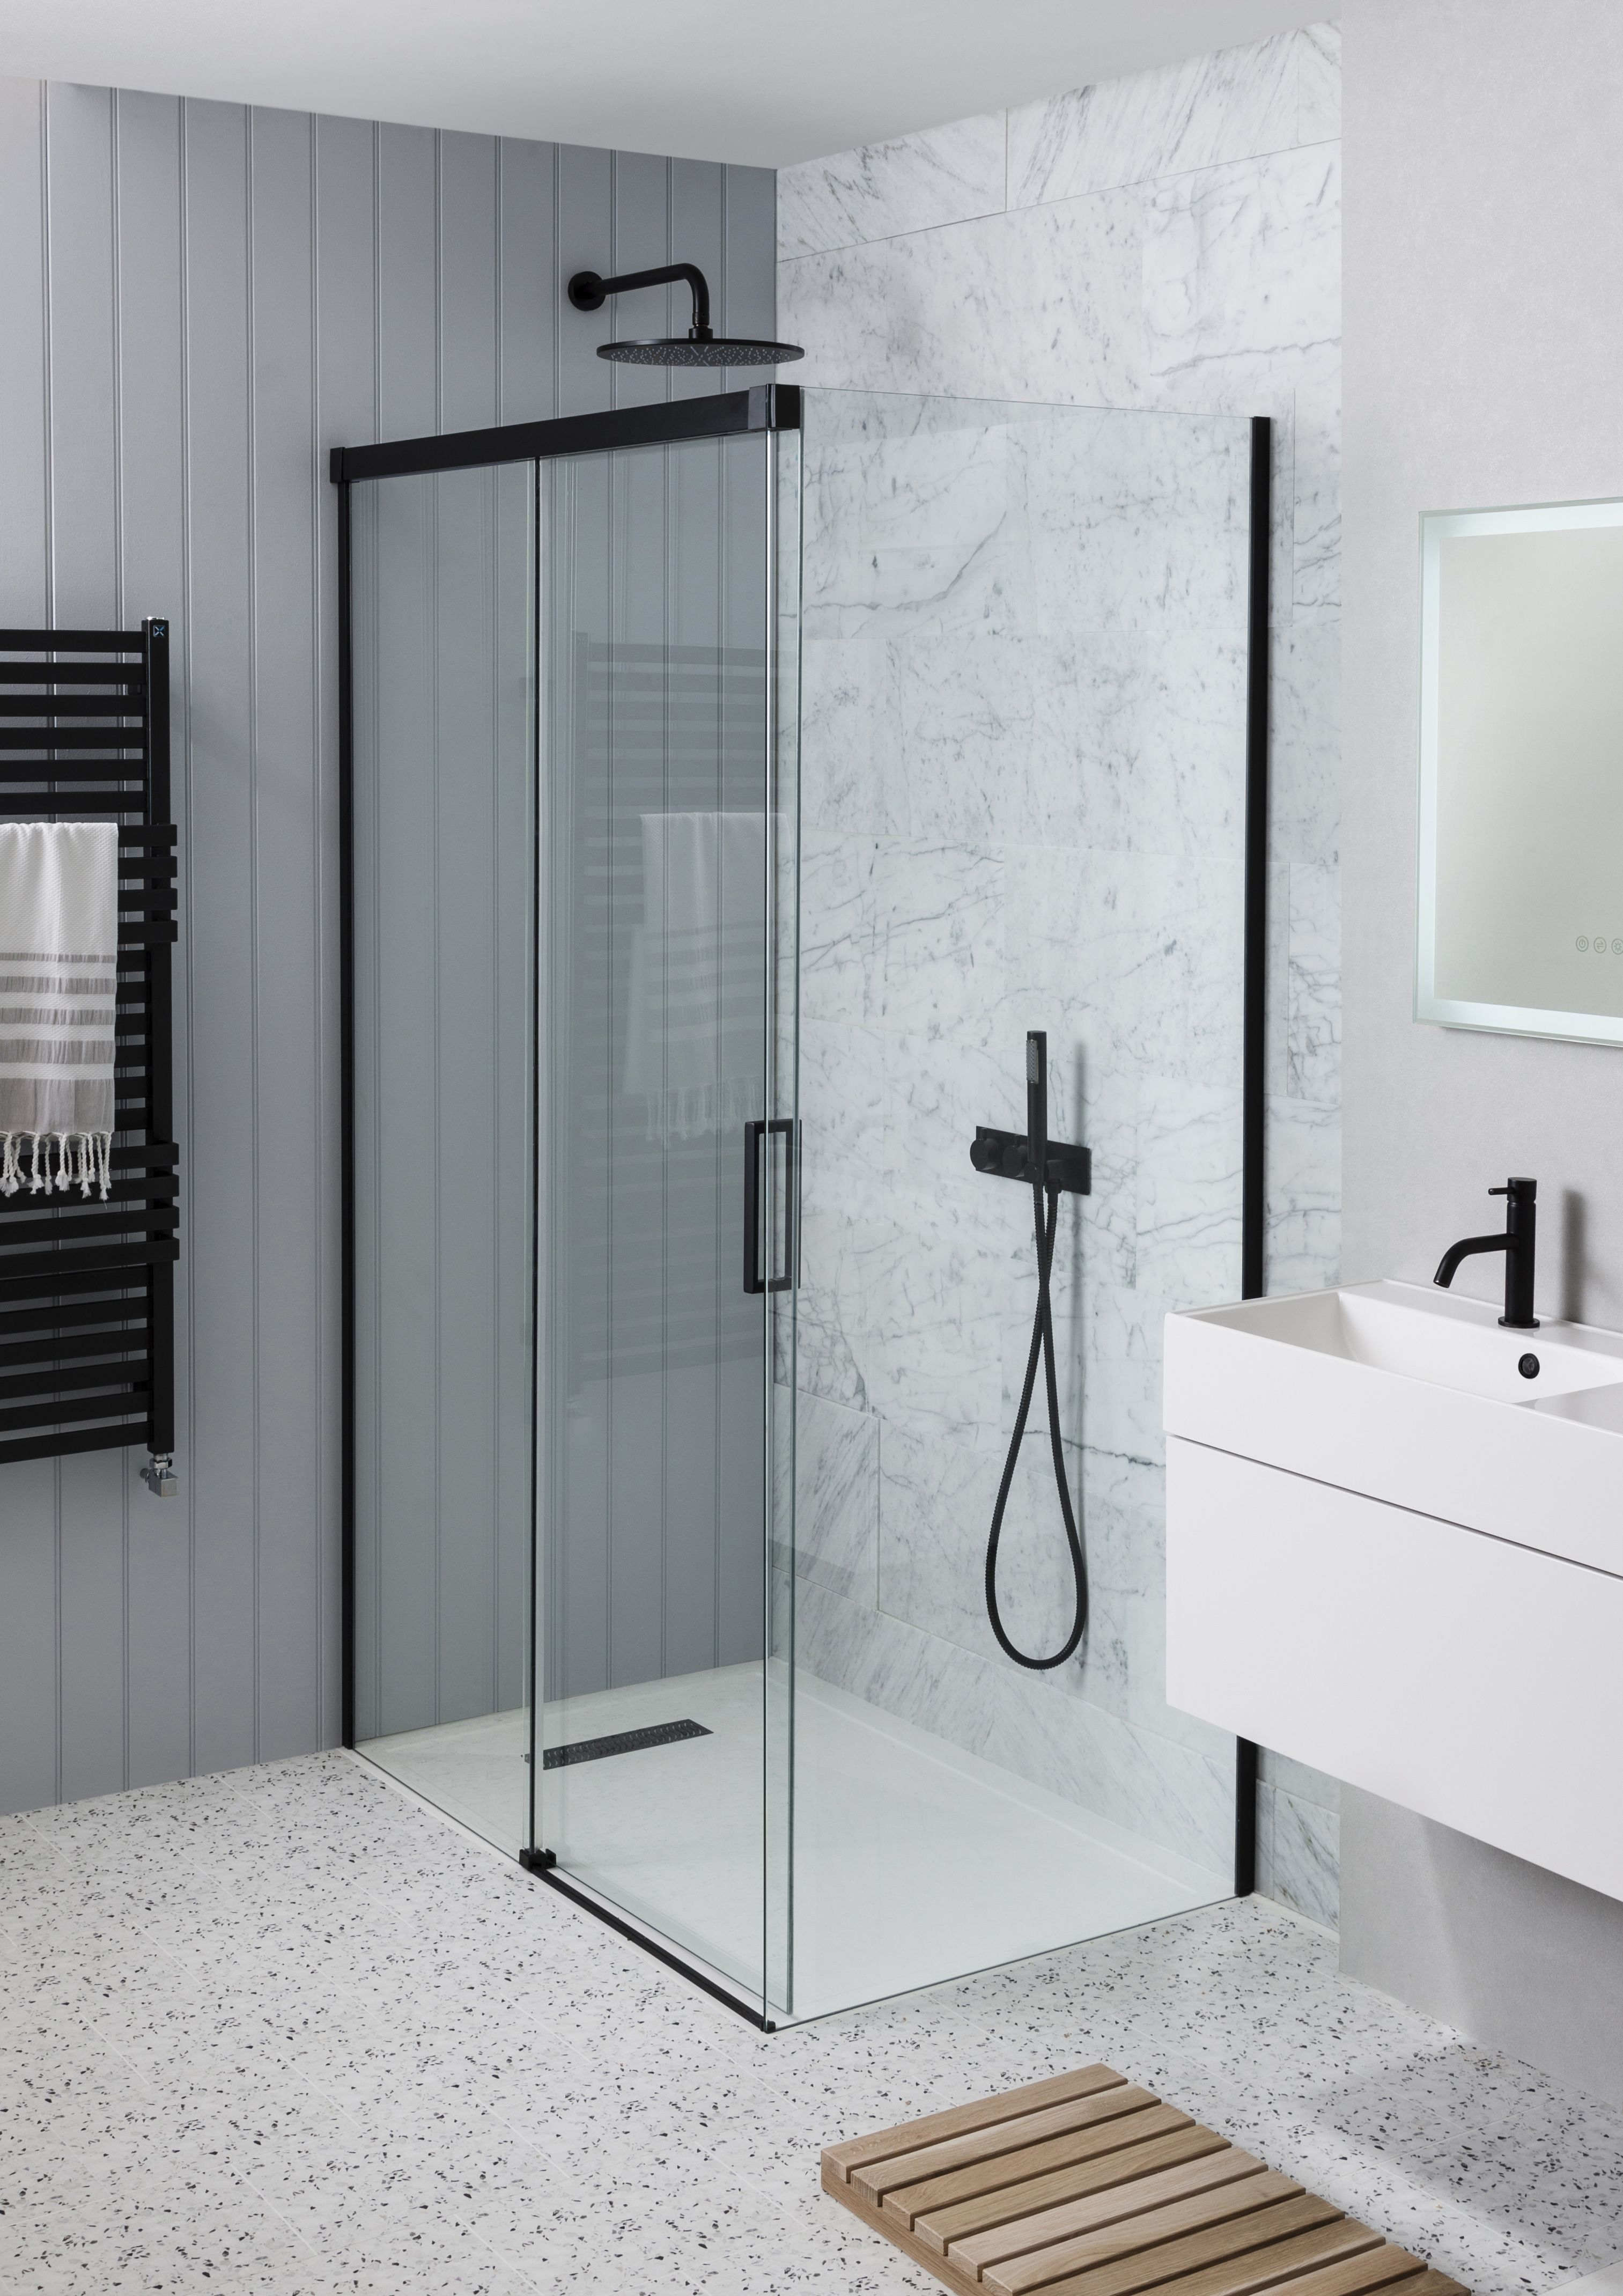 Twenty Years Of Bathroom Obsession From Enclosures And Trays To